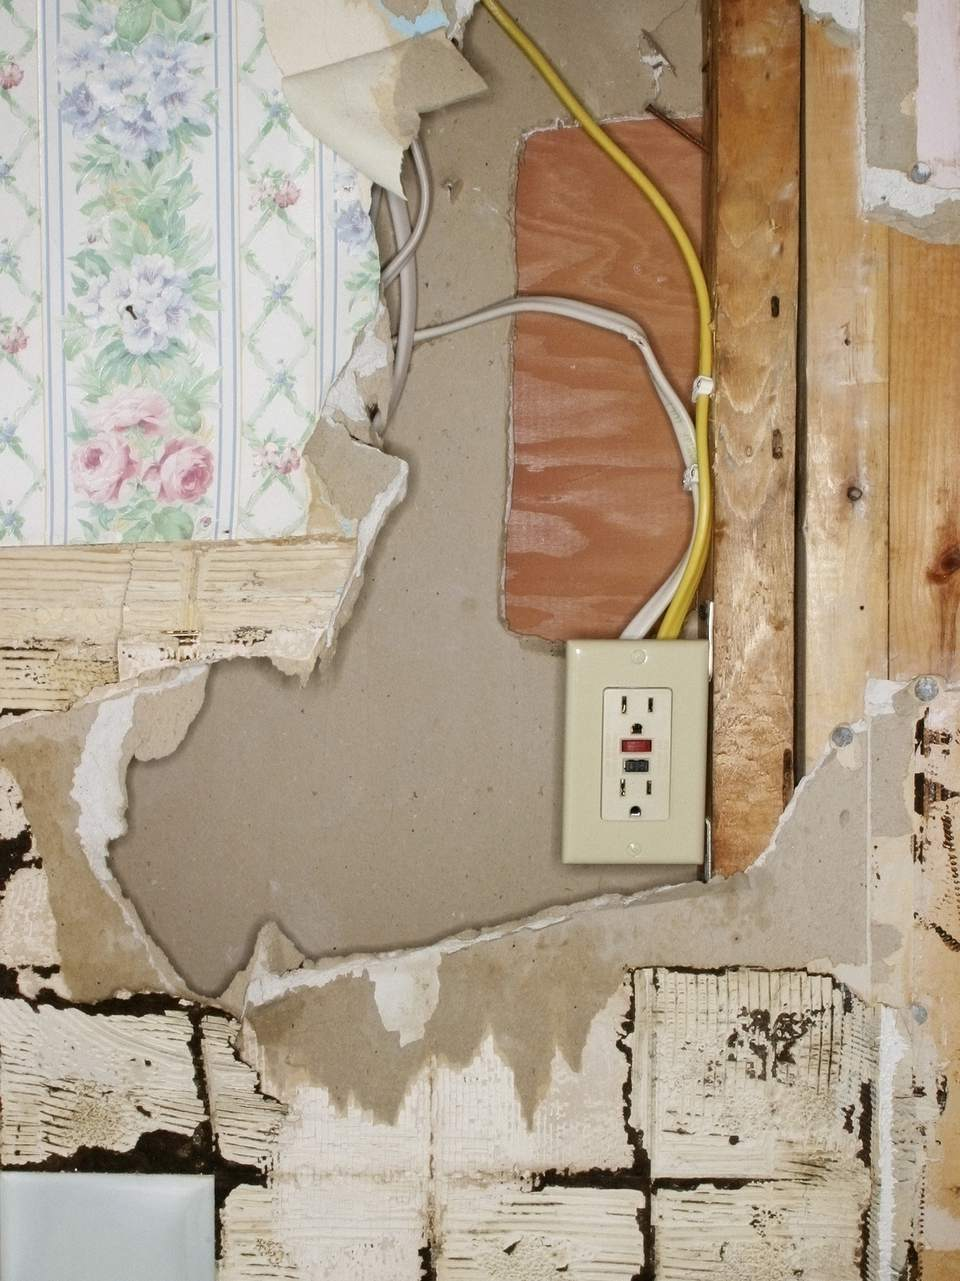 Damaged wall outlet